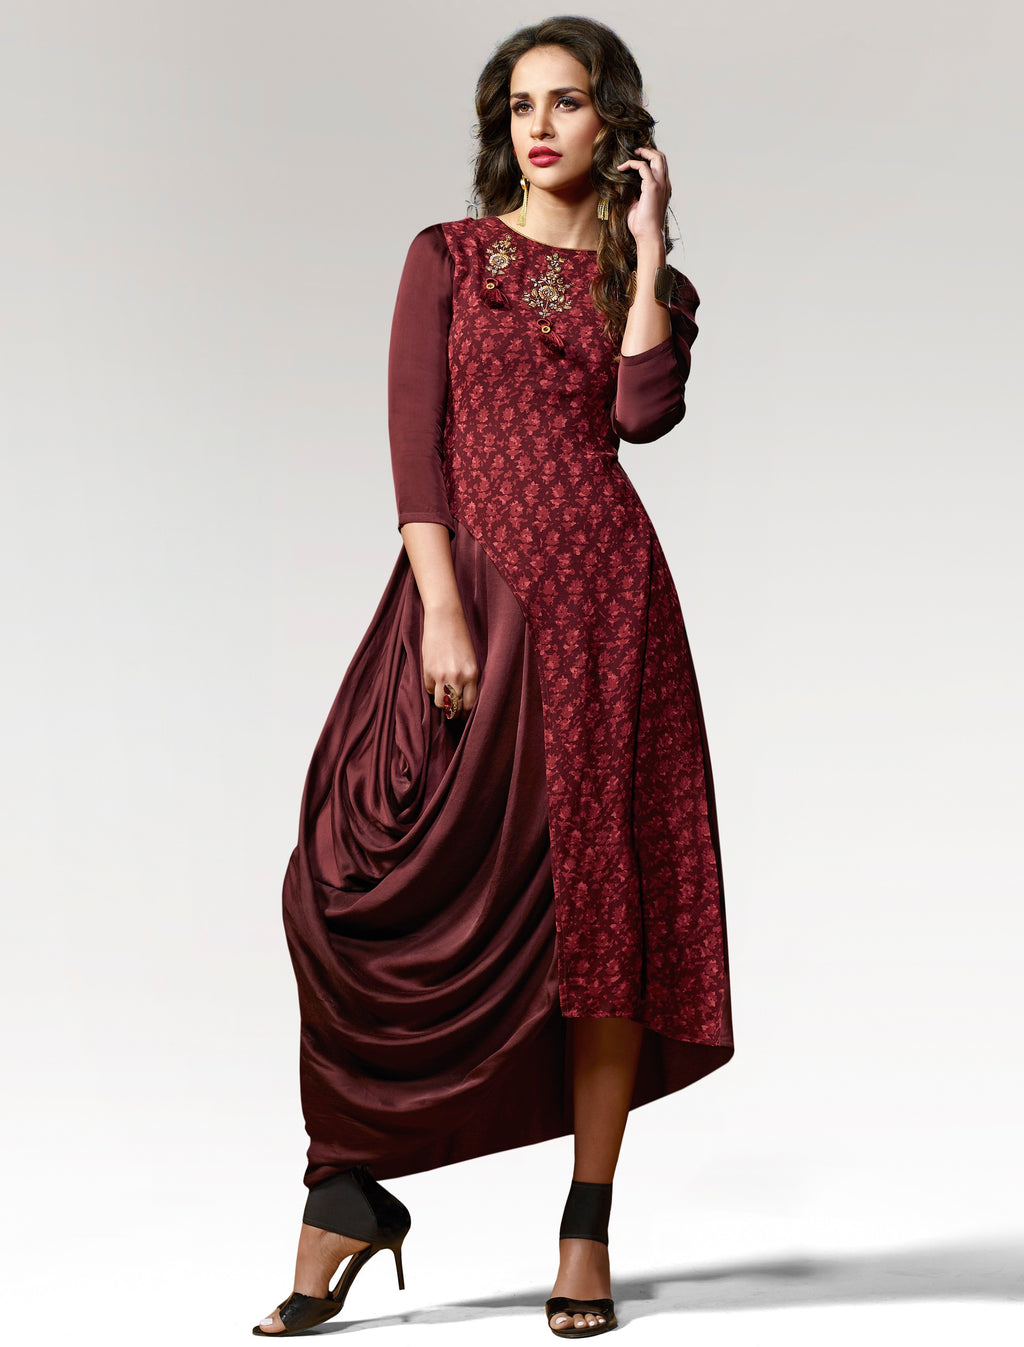 Maroon Color Silk & Crepe Readymade Party Wear Kurtis ( Sizes - 38,40) Vinay TumbaTwinkle Catlog SJ-10452